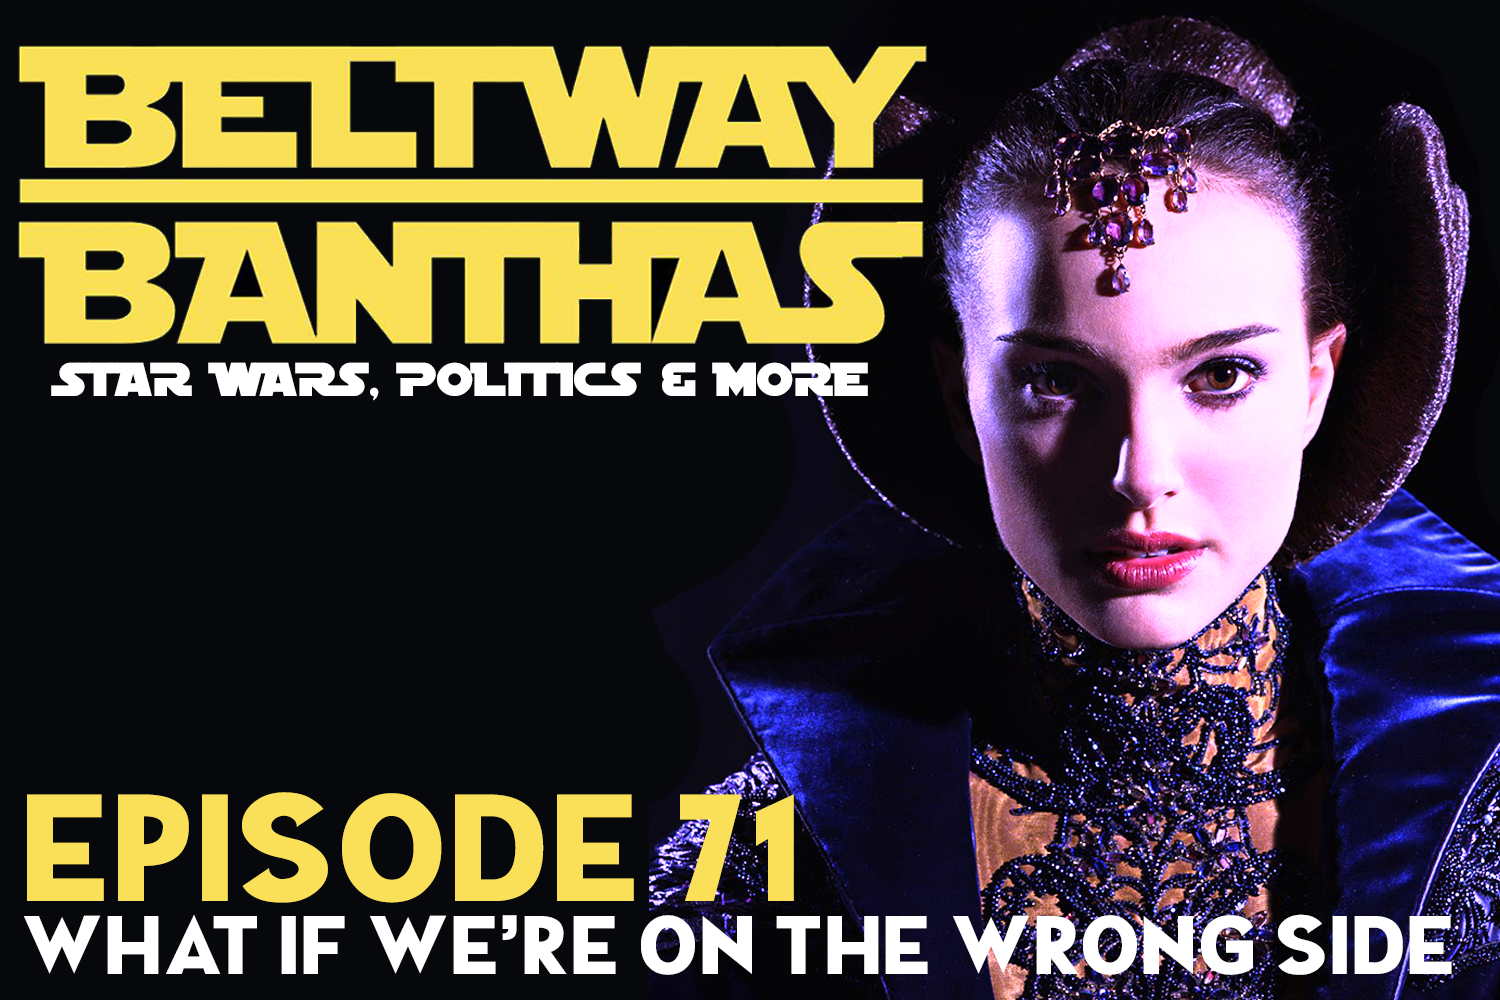 Beltway Banthas #71: What If We're On the Wrong Side